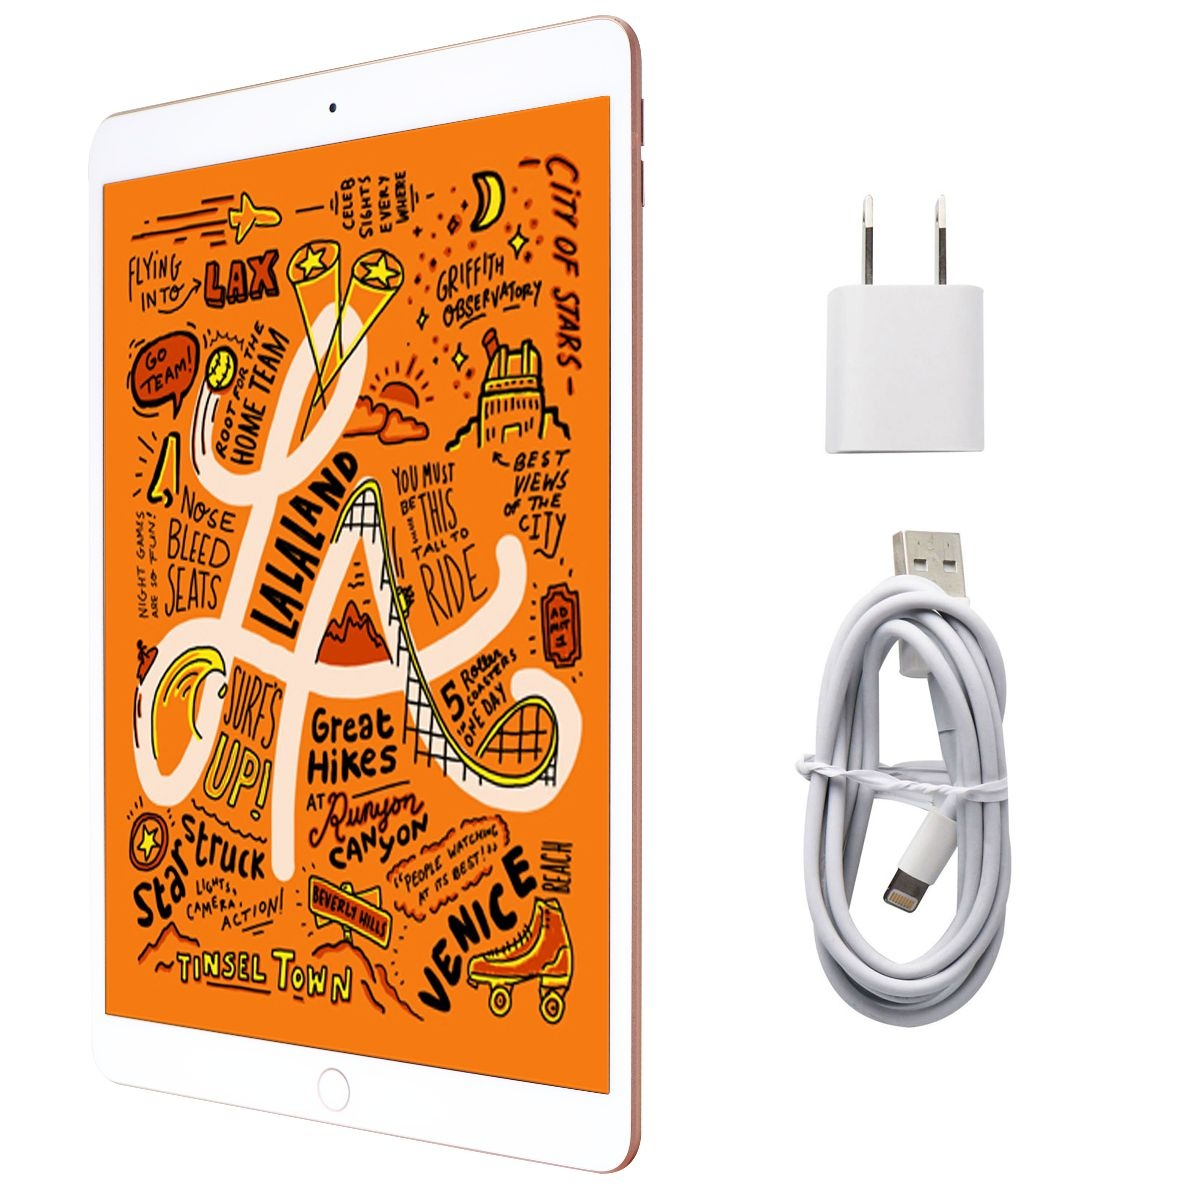 Apple iPad Air 10.5-inch (3rd Gen) Tablet A2152 (Wi-Fi Only) - 64GB / Gold